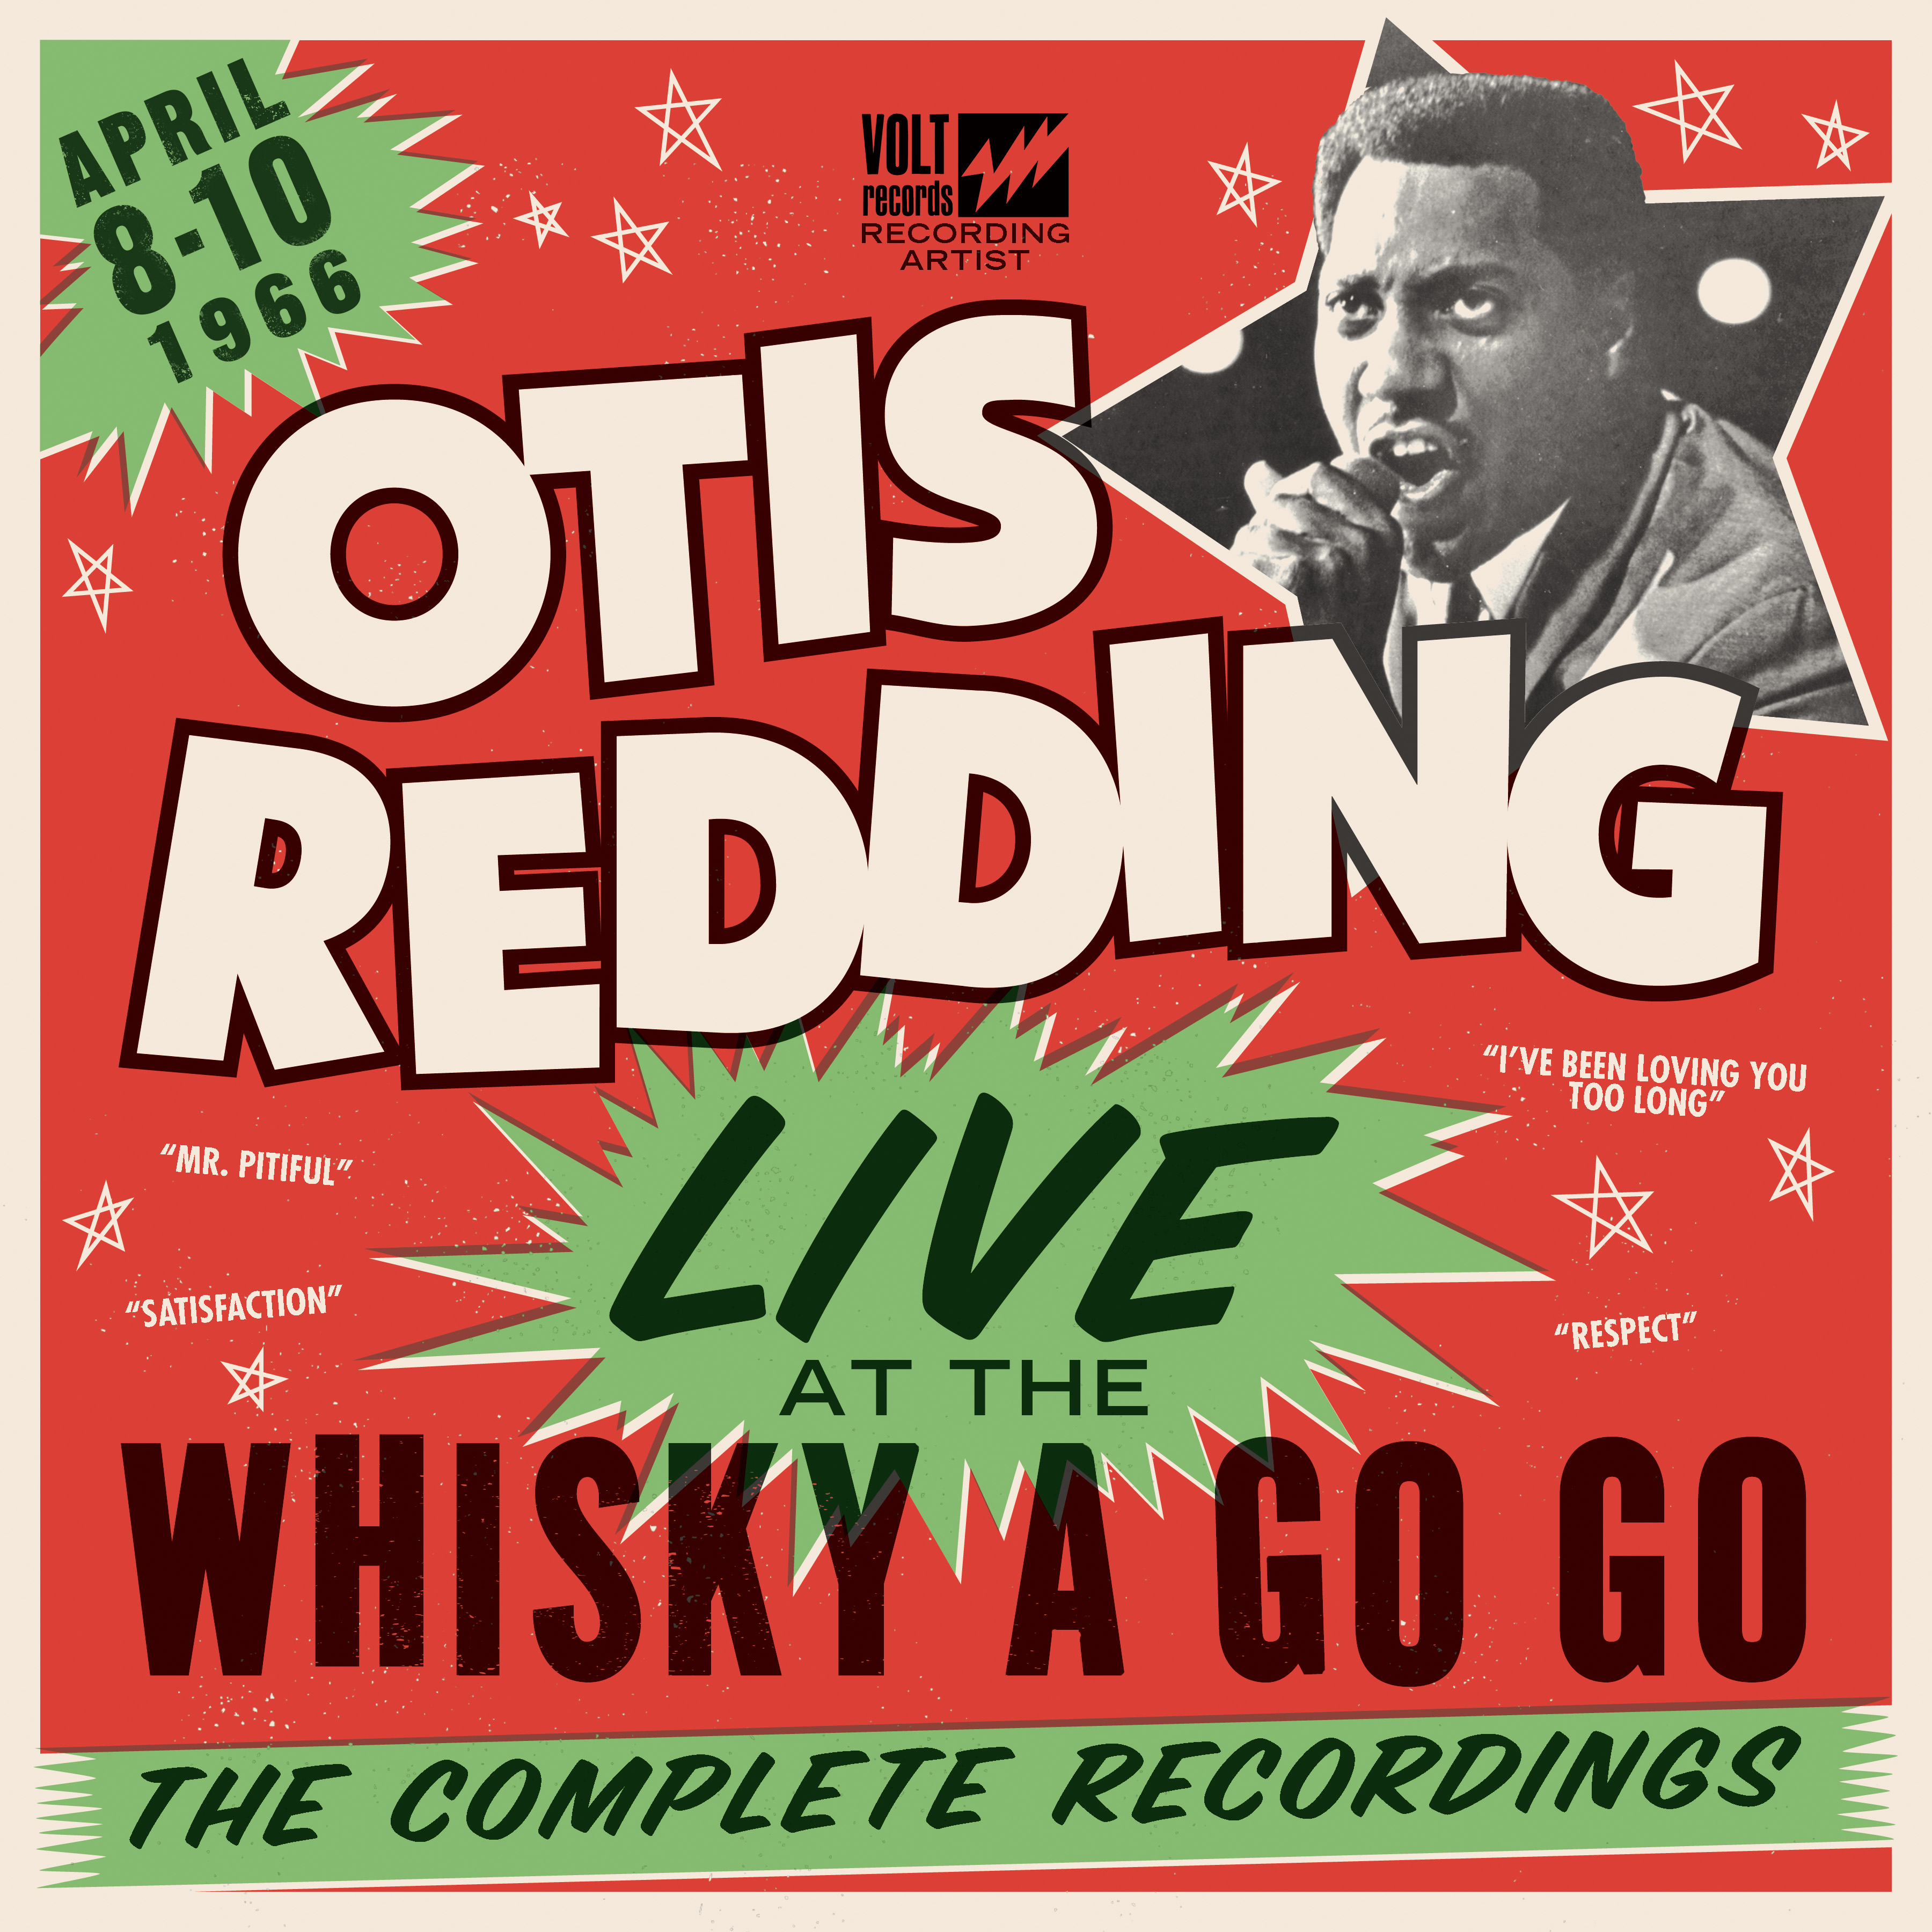 Otis Redding Live At The Whisky A Go Go - The Complete Recordings